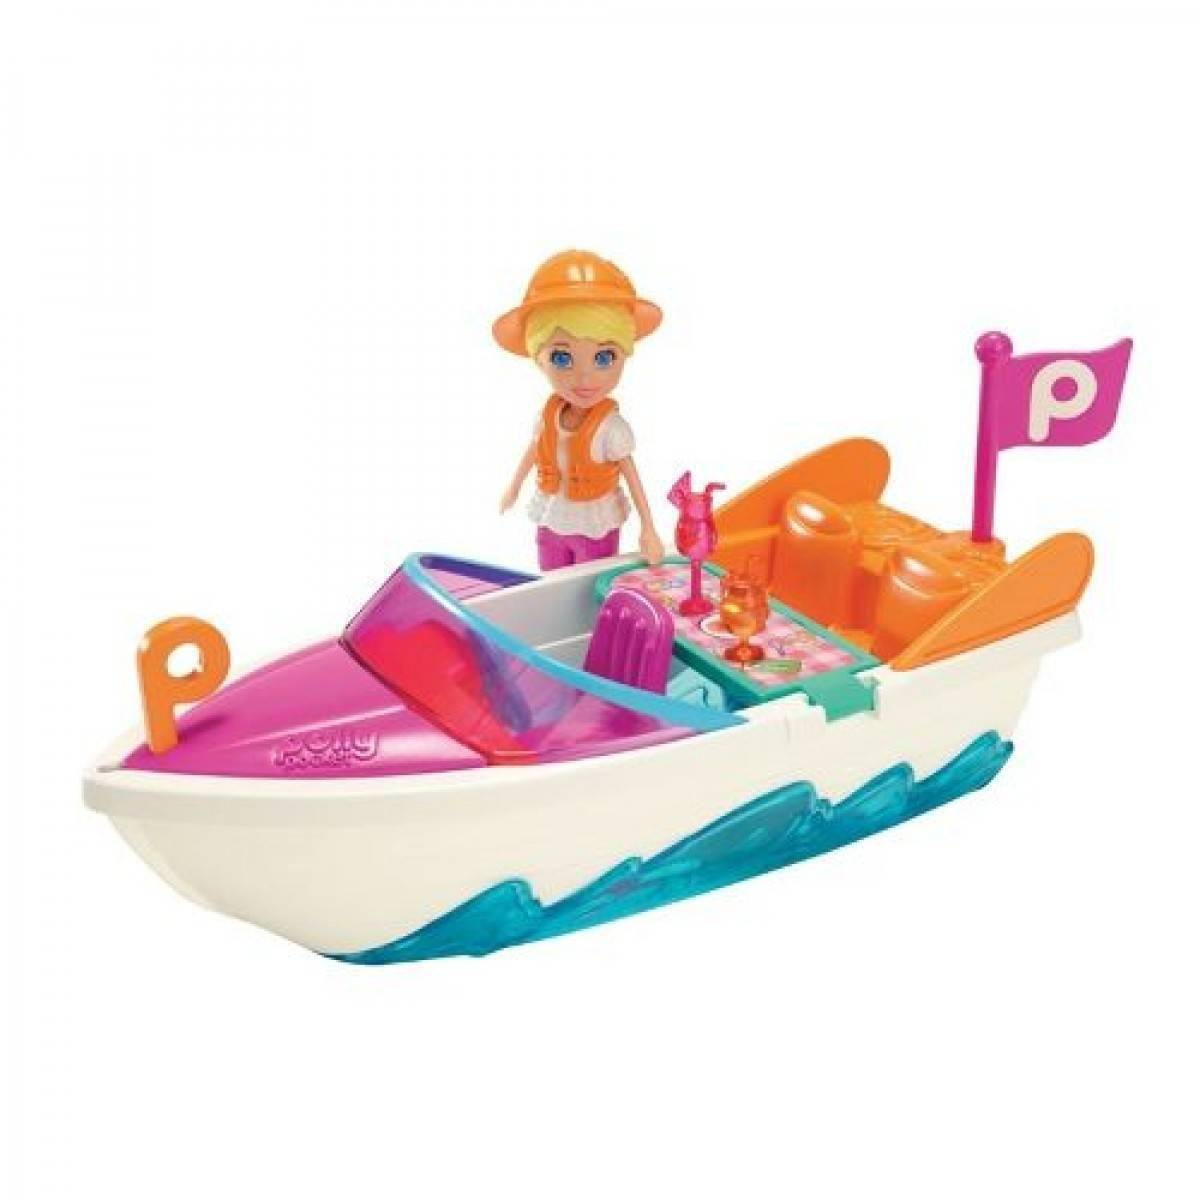 Super Lancha da Polly Pocket - Mattel CFM27